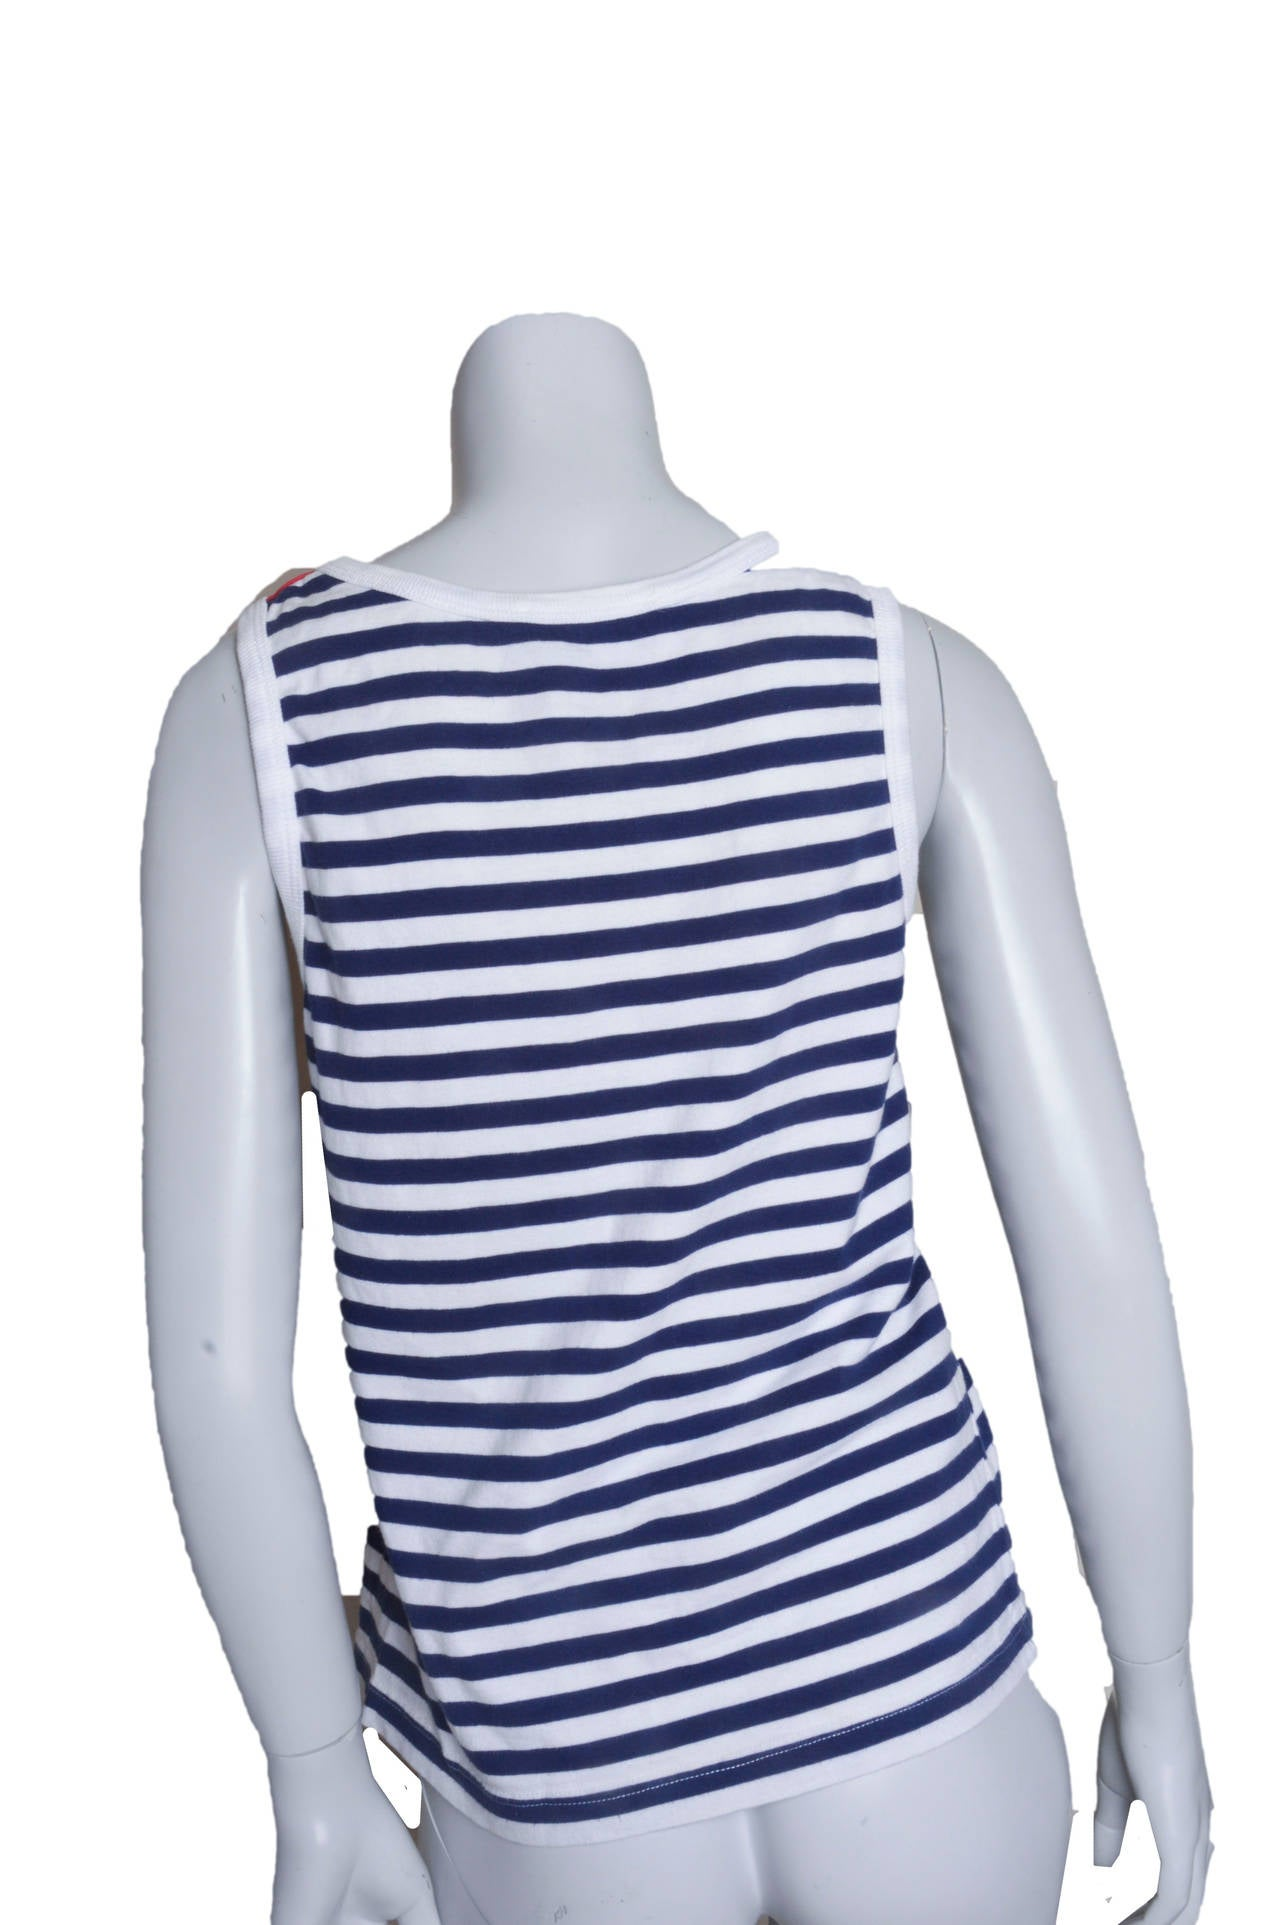 Yves Saint Lauren Variation Striped Signature Tank In Excellent Condition For Sale In San Francisco, CA